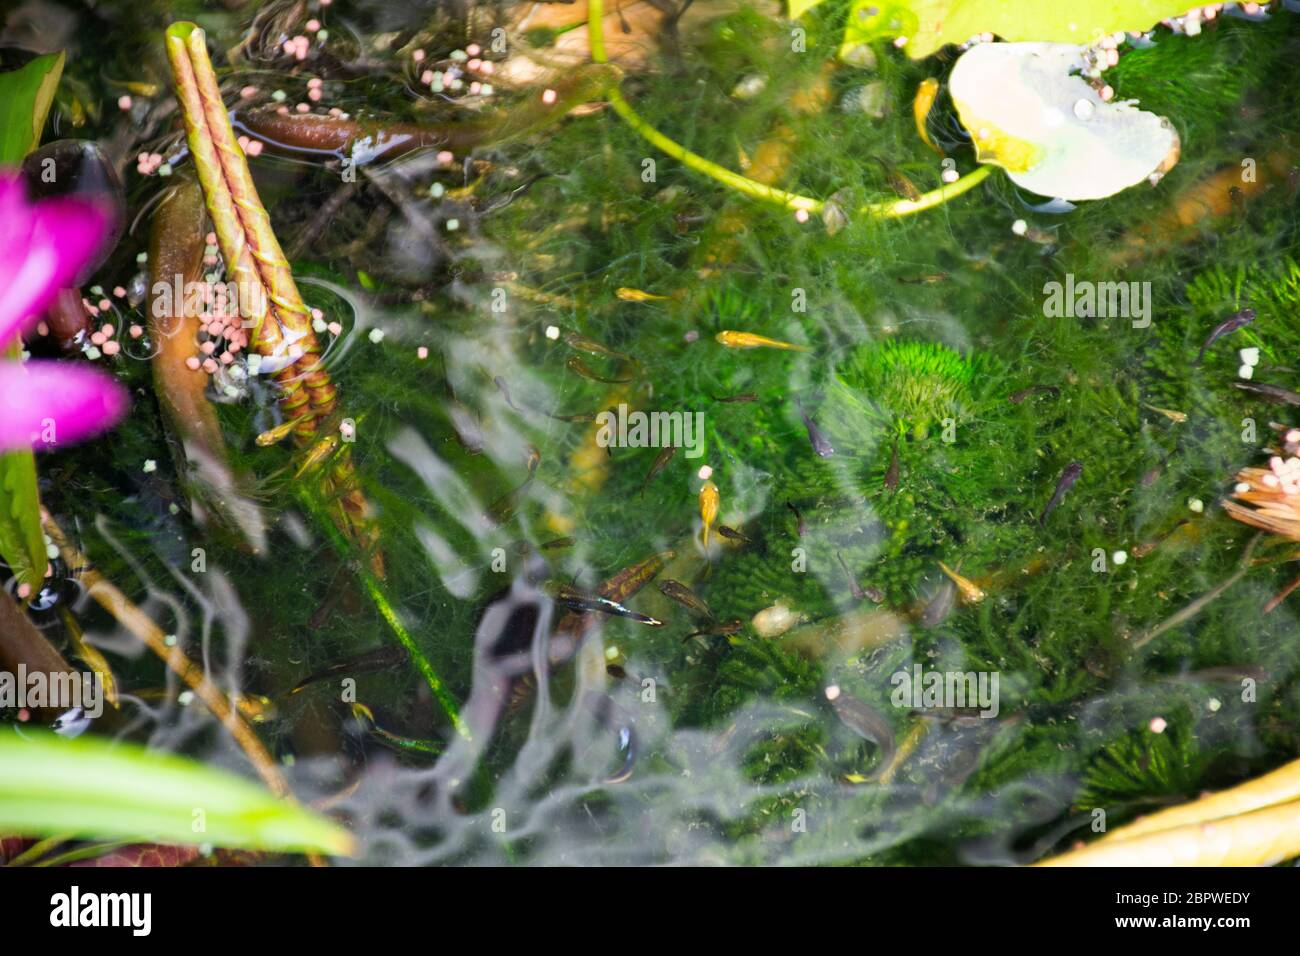 Guppy Fishes Or Millionfish And Rainbow Fish Swimming In Water And Eating Food And Lotus Plant In Fish Claypot At Small Garden In Nonthaburi Thailand Stock Photo Alamy